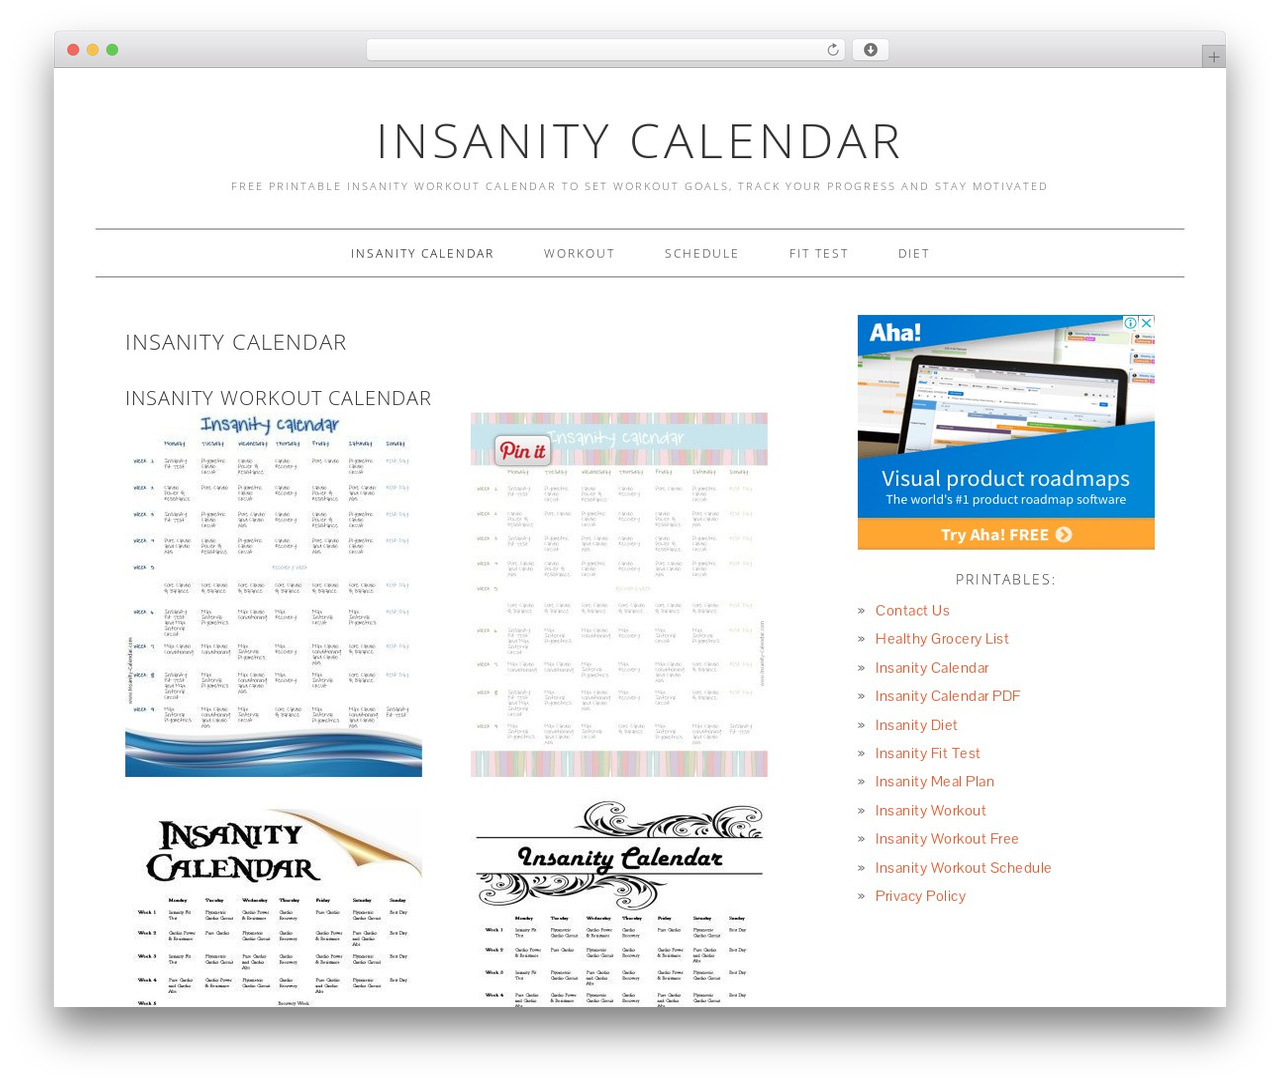 Foodie Child Theme Food WordPress Theme By Shay Bocks within Insanity Calendar Pdf